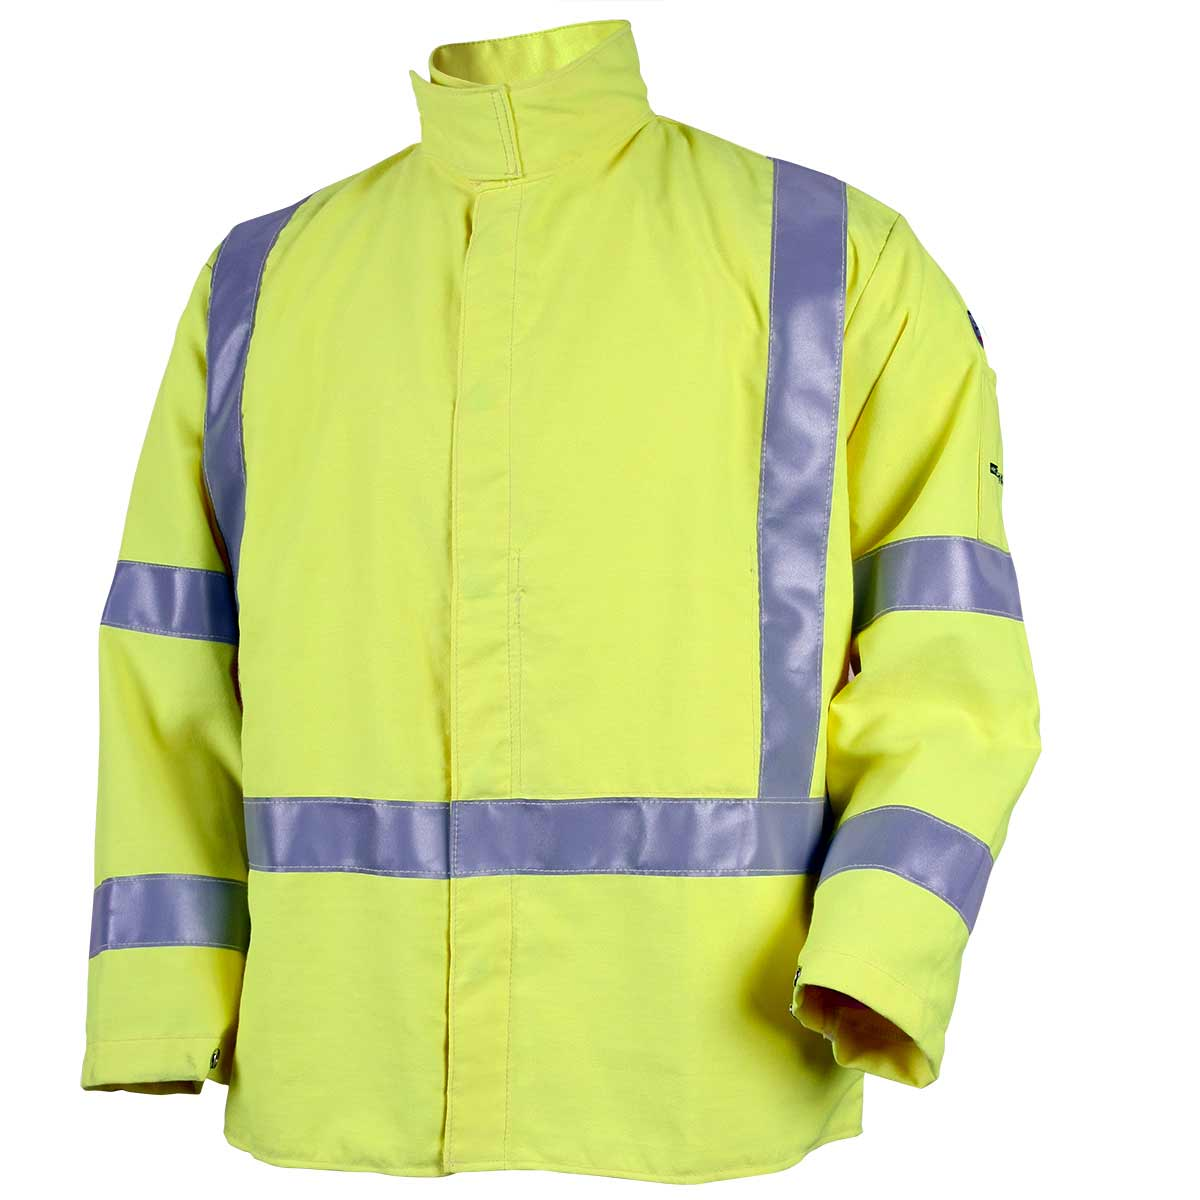 9 OZ FLAME RESISTANT ANSI HI-VIS ARCWELD JACKET WITH SILVER REFLECTIVE. Pack 1. X Large. JF4312-HY-XLG